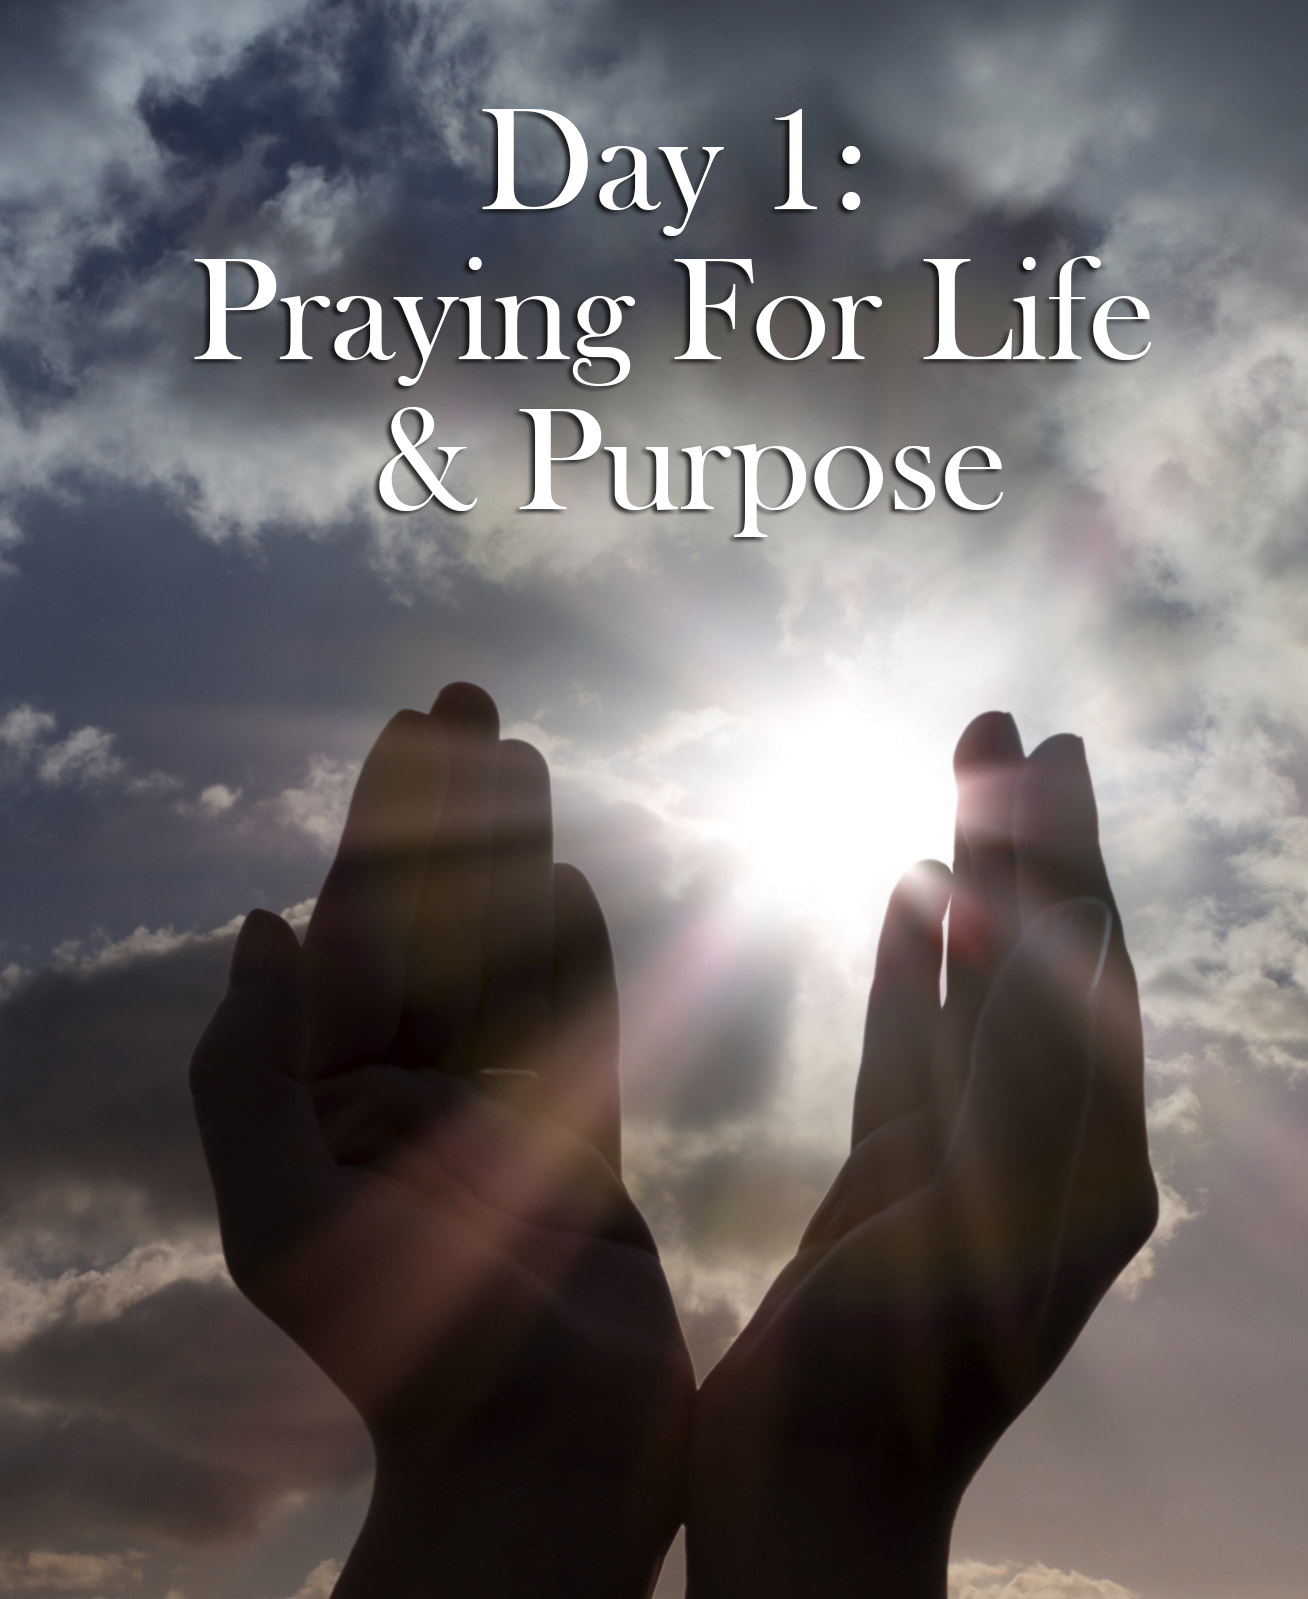 Day 1: Praying for Your Life & Purpose